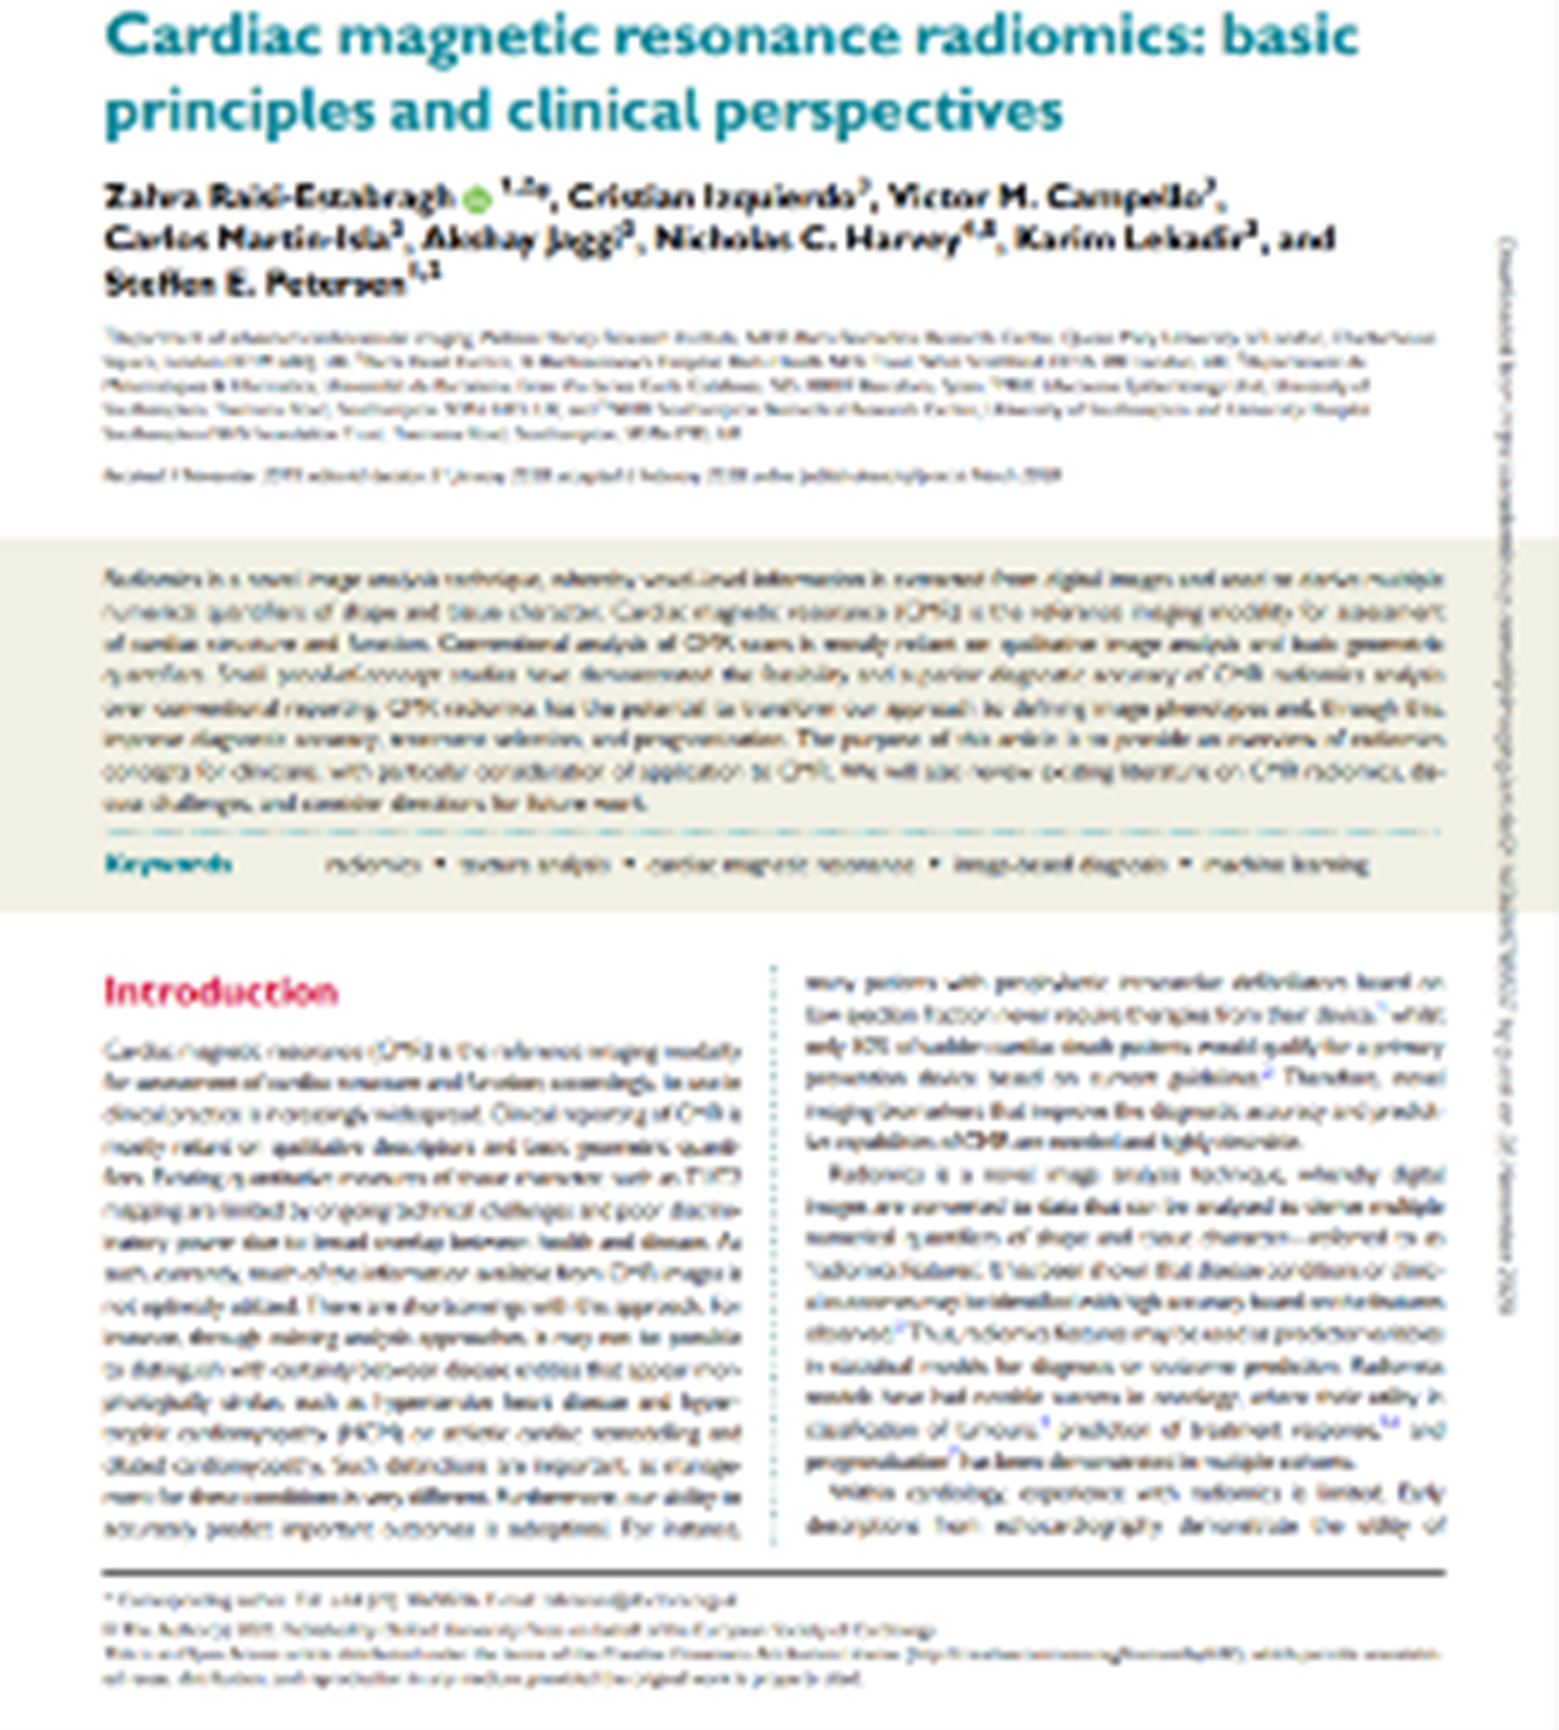 Cardiac magnetic resonance radiomics: basic principles and clinical perspectives